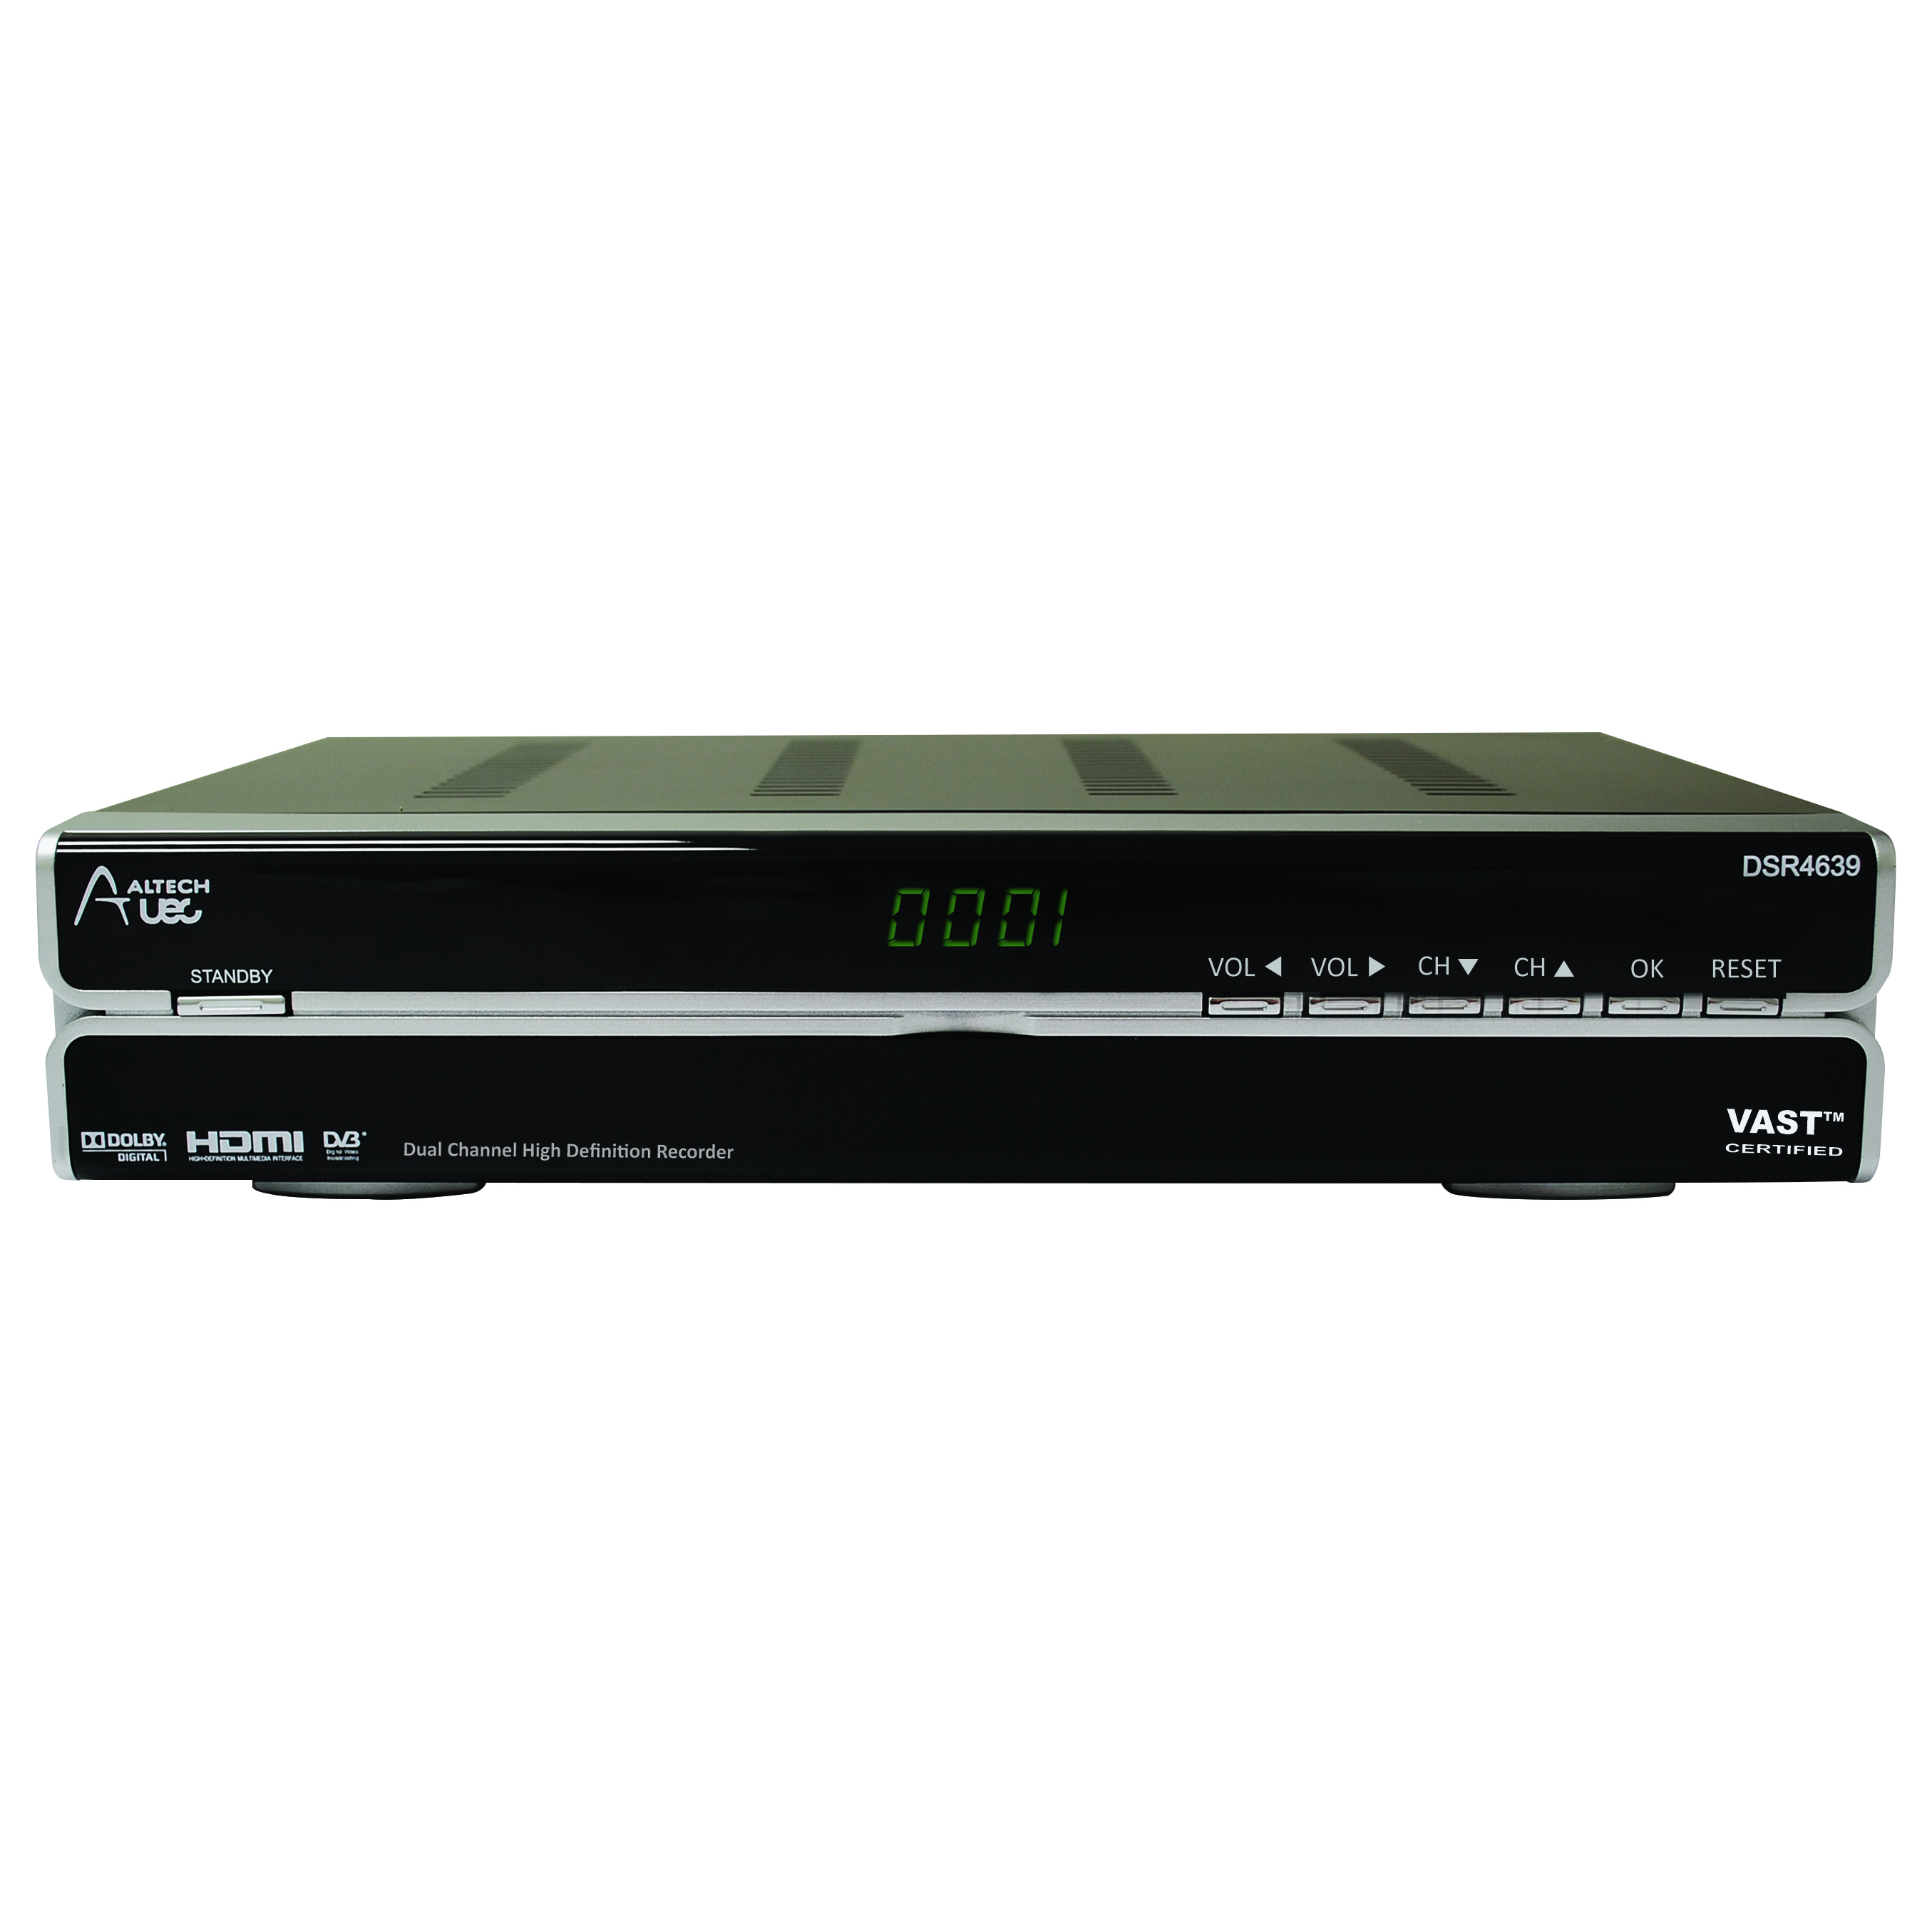 33MM-DCR-UEC - VAST Certified HD Dual Channel Recorder